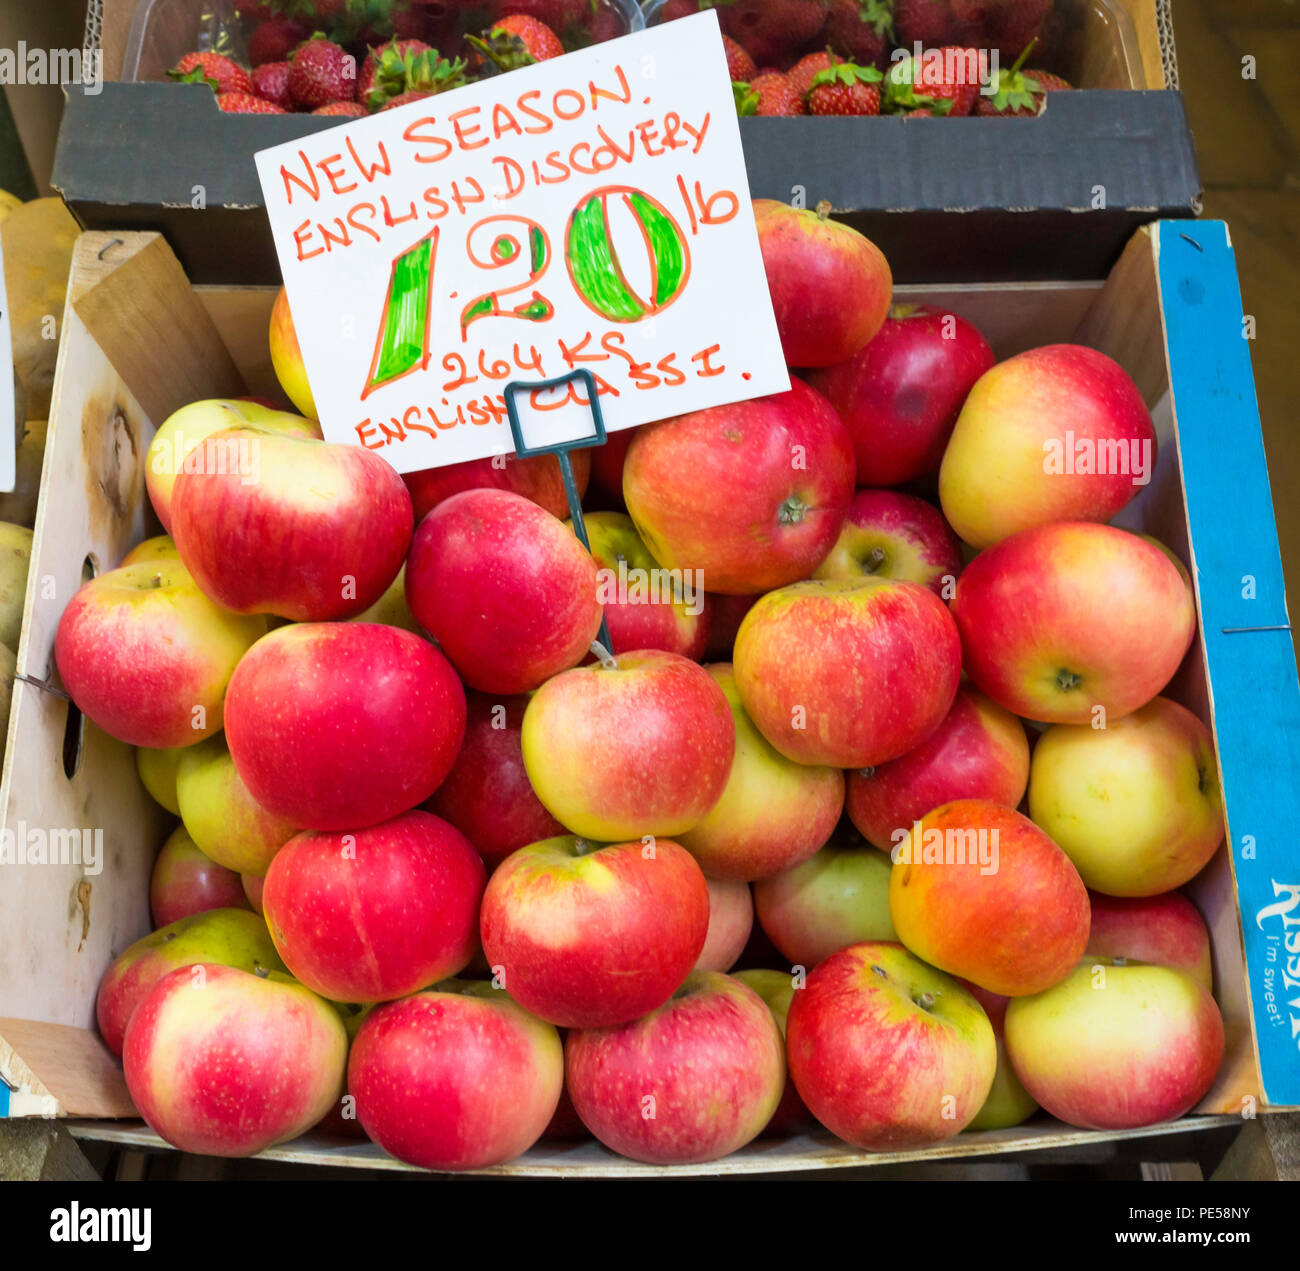 New Season English Class 1 Discovery apples for sale in greengrocers stall in Darlington County Durham priced at £1.20 per pound or £2.64 per Kilo Stock Photo